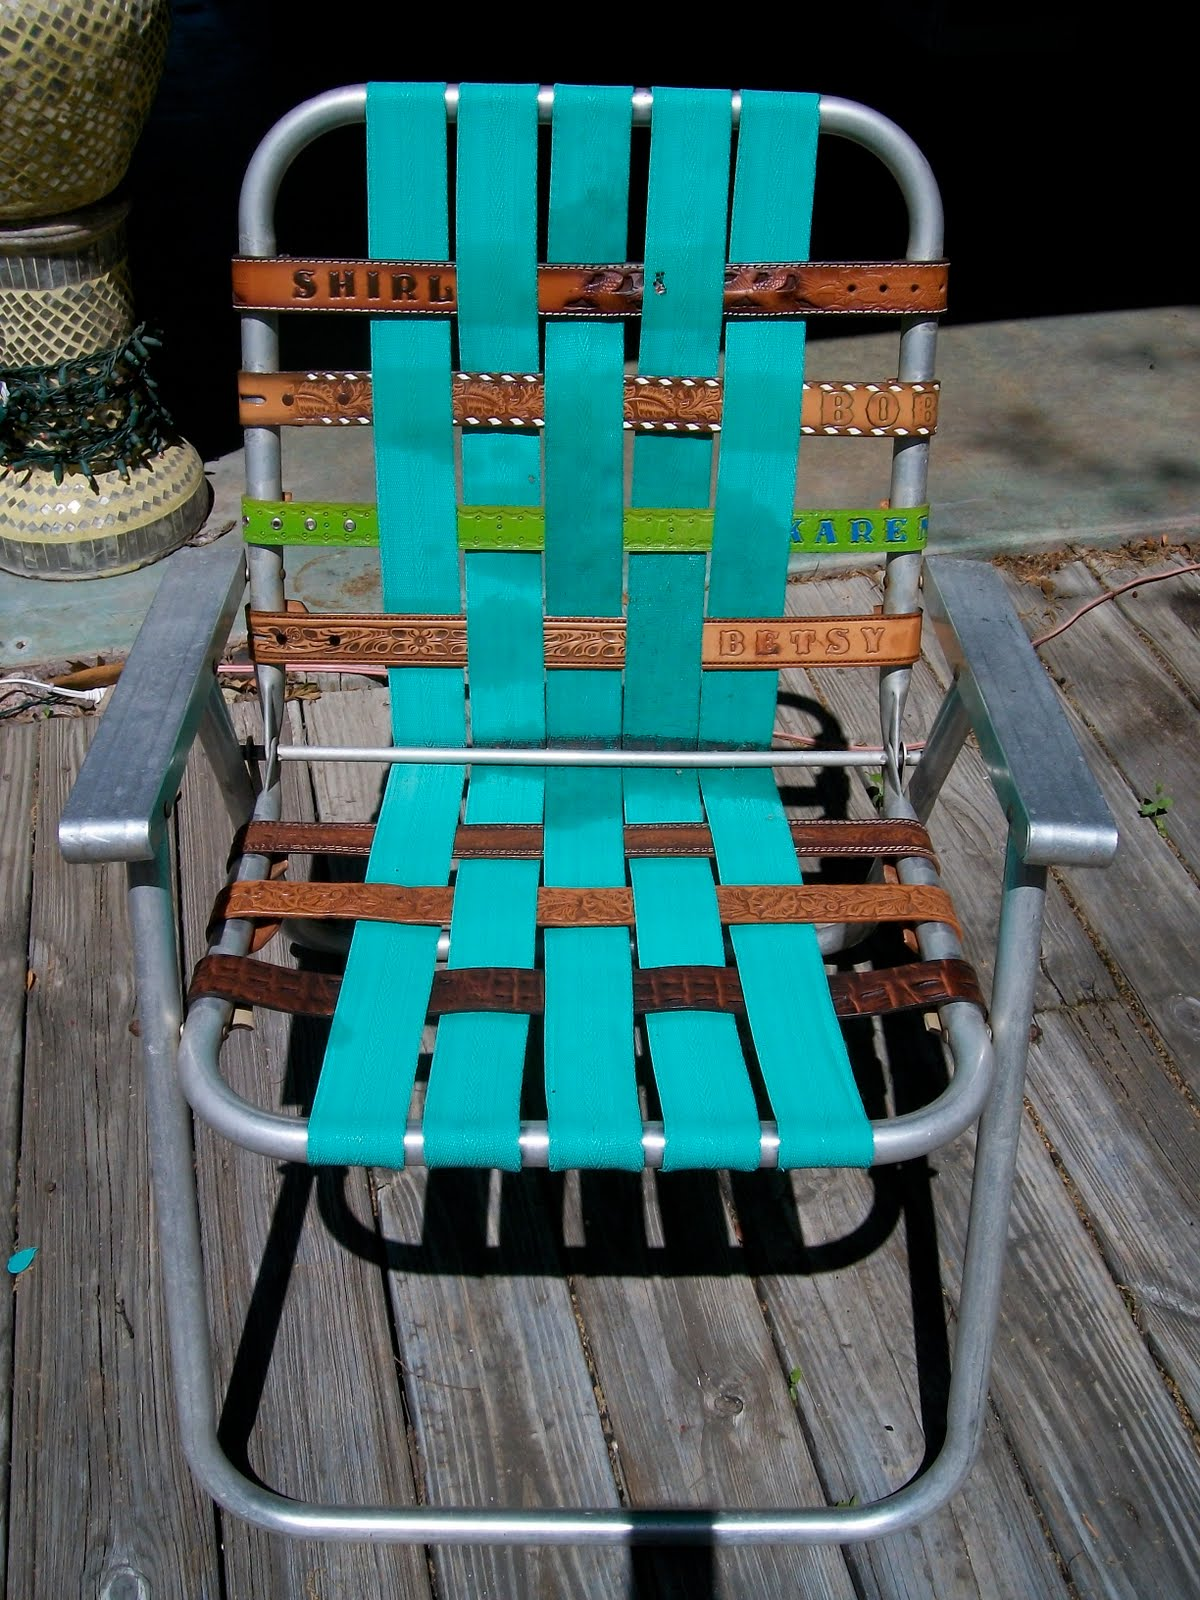 Chair Webbing - Compare Prices on Chair Webbing in the Furniture